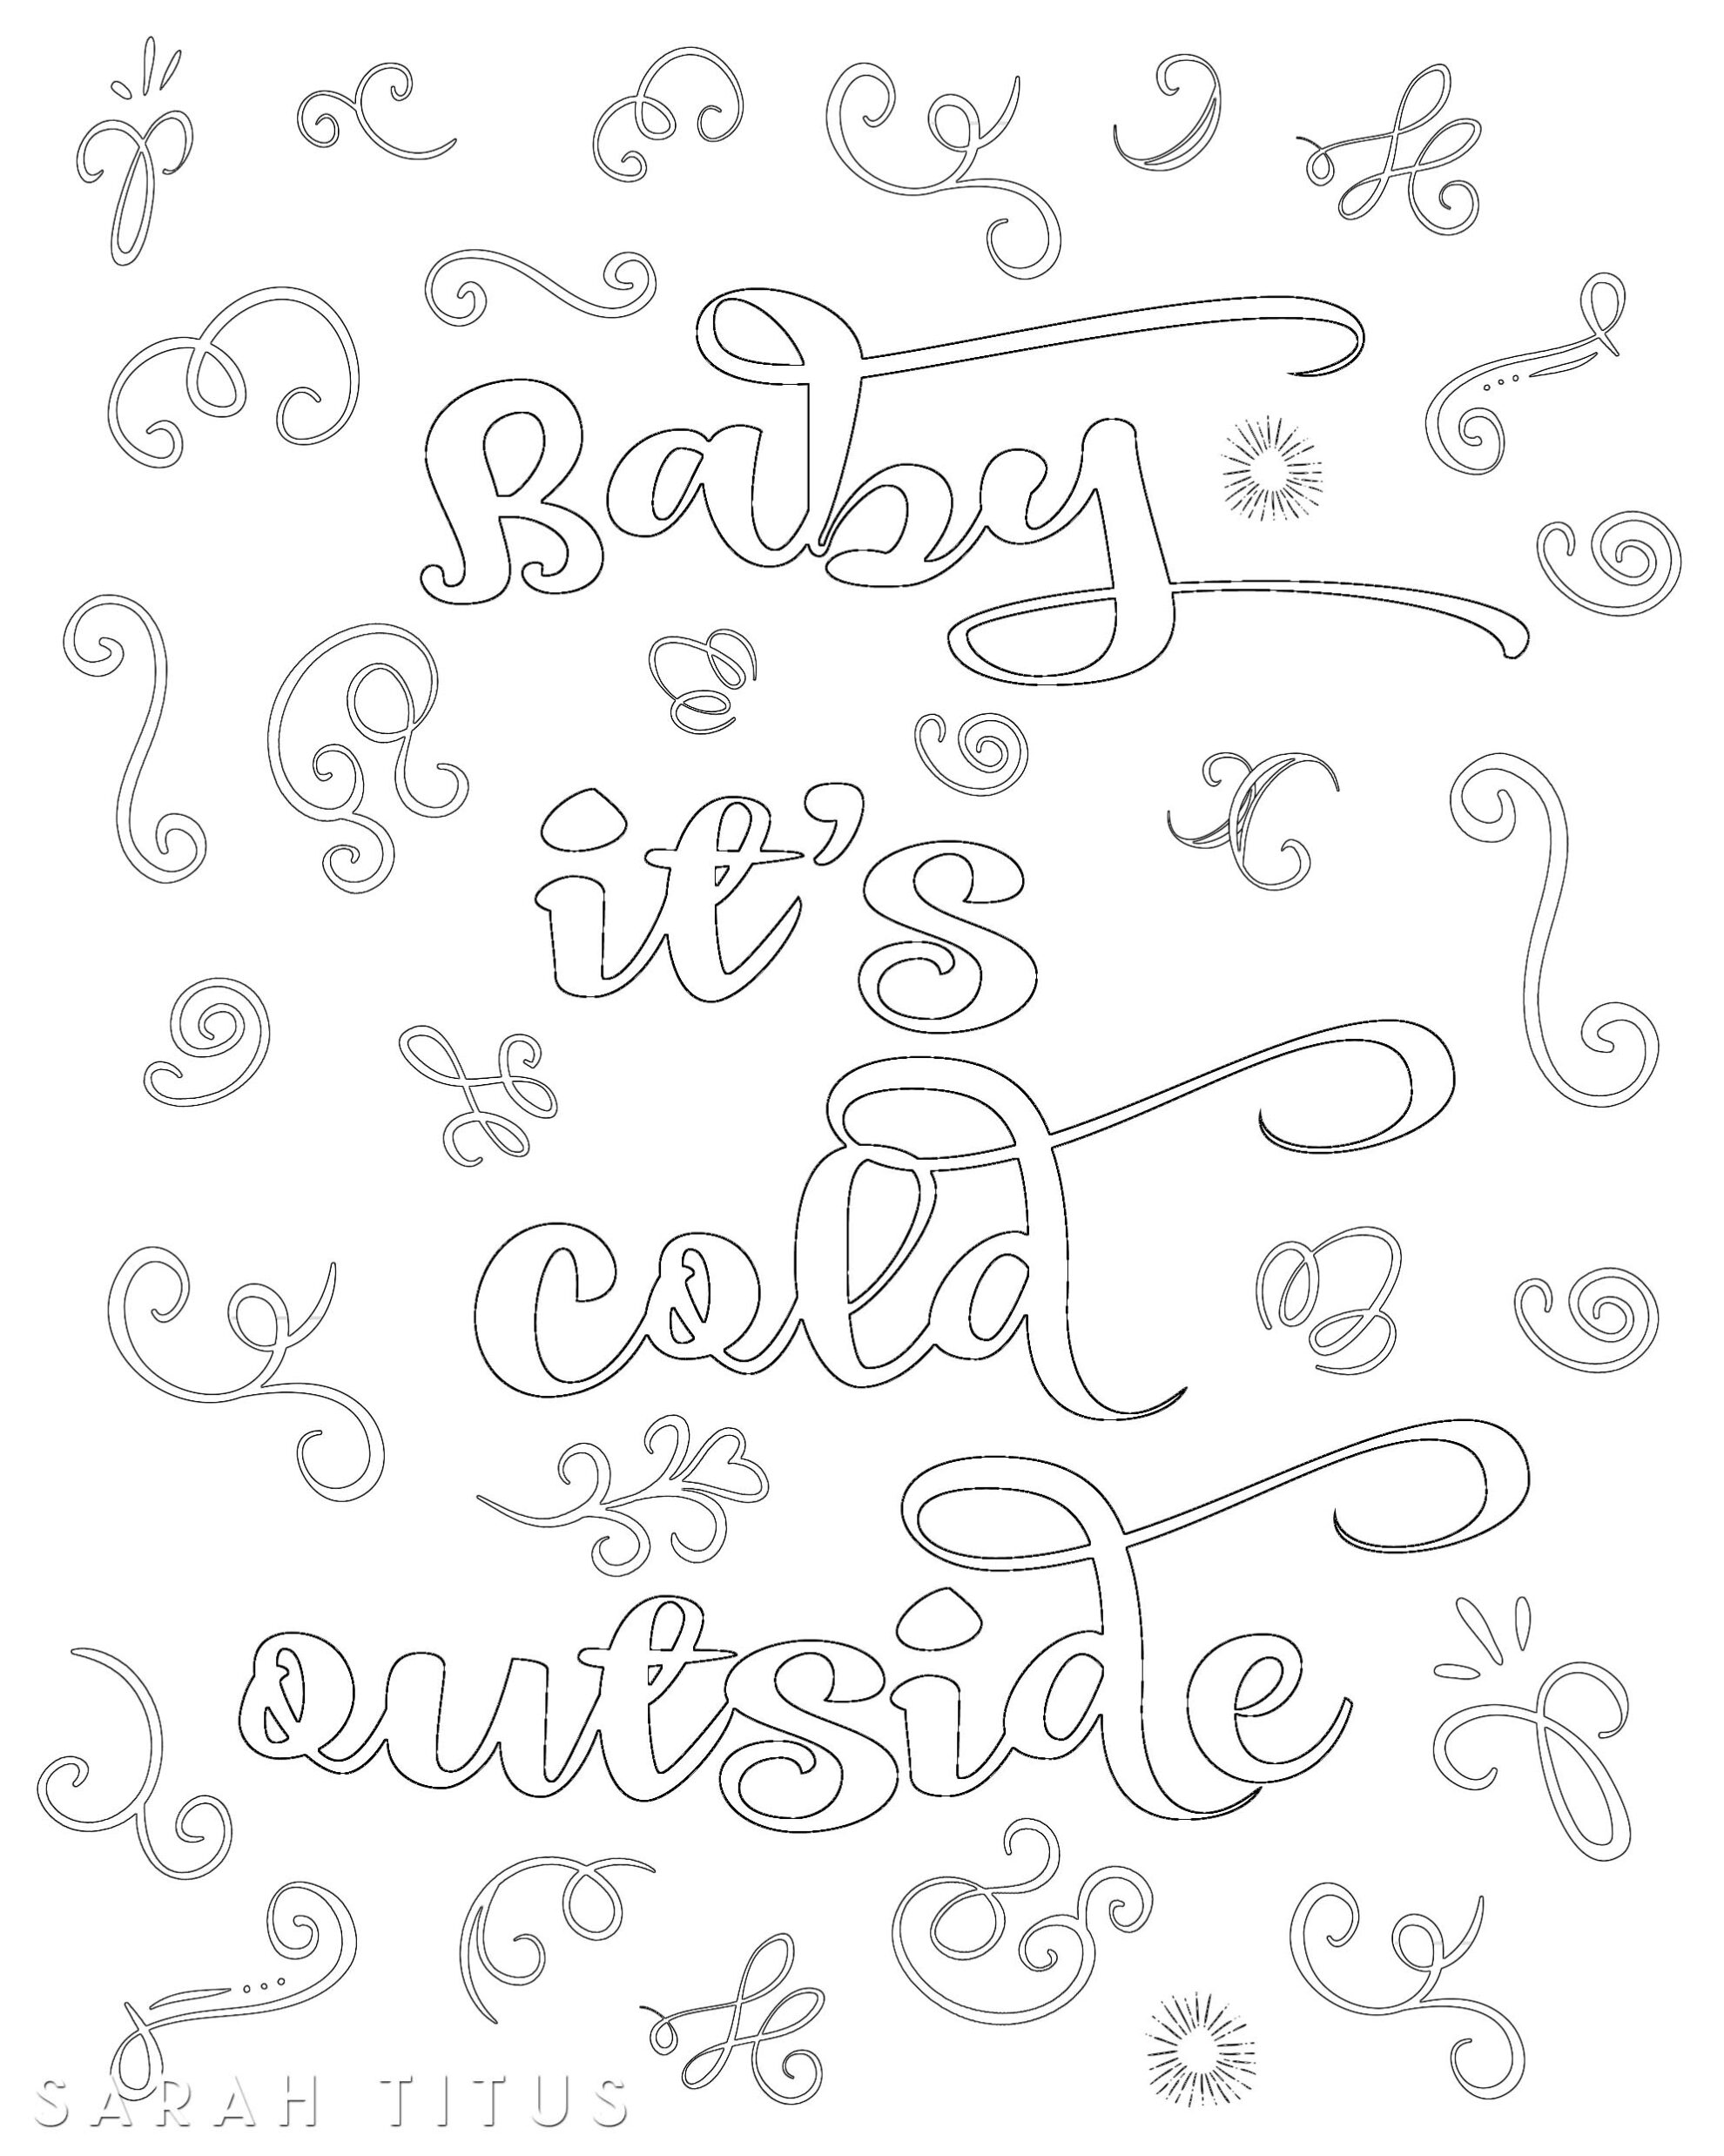 Free Printable Christmas Coloring Sheets - Sarah Titus